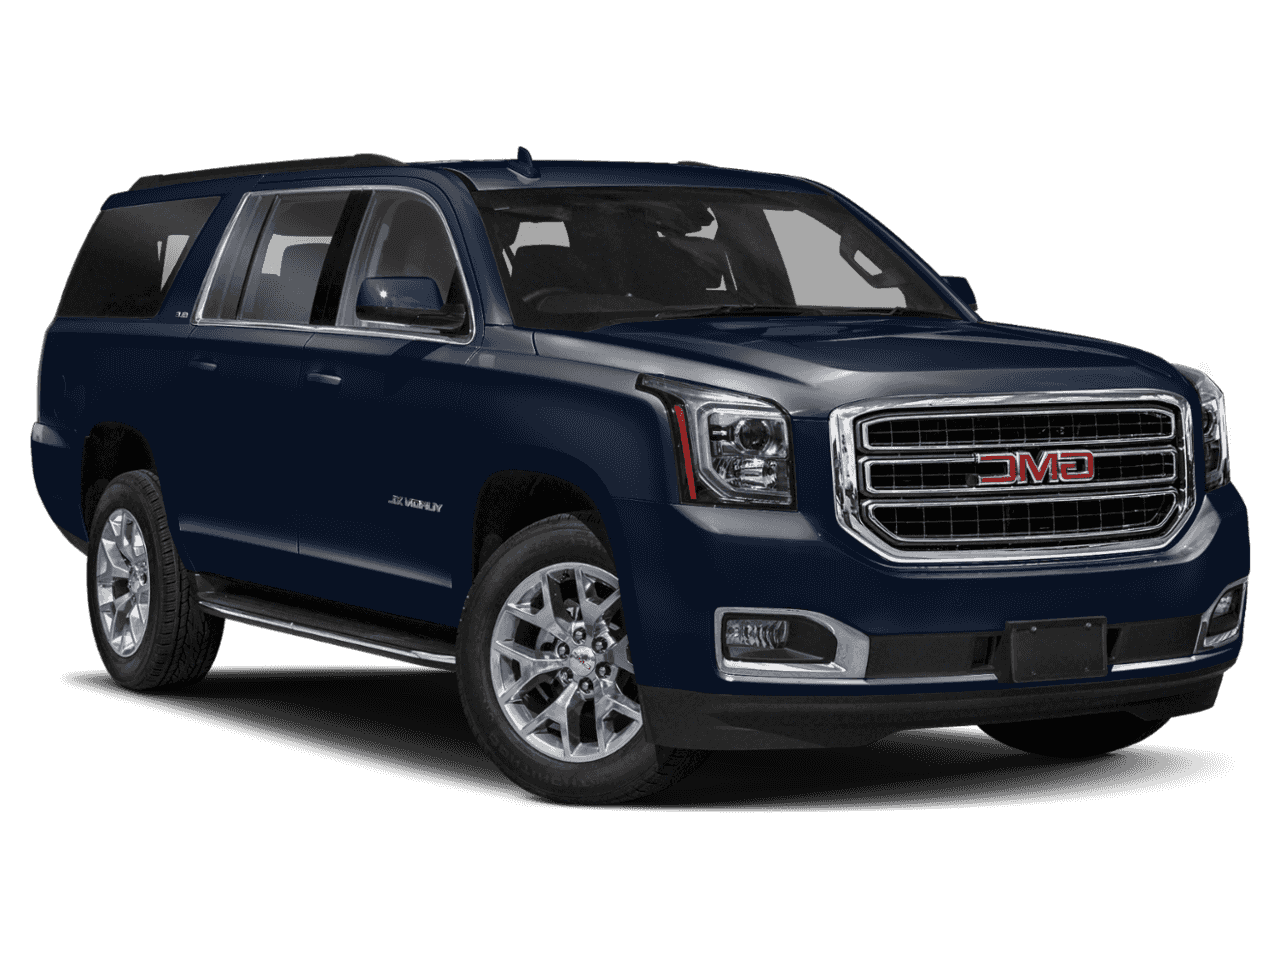 88 The Best 2019 GMC Yukon Denali Xl Concept And Review